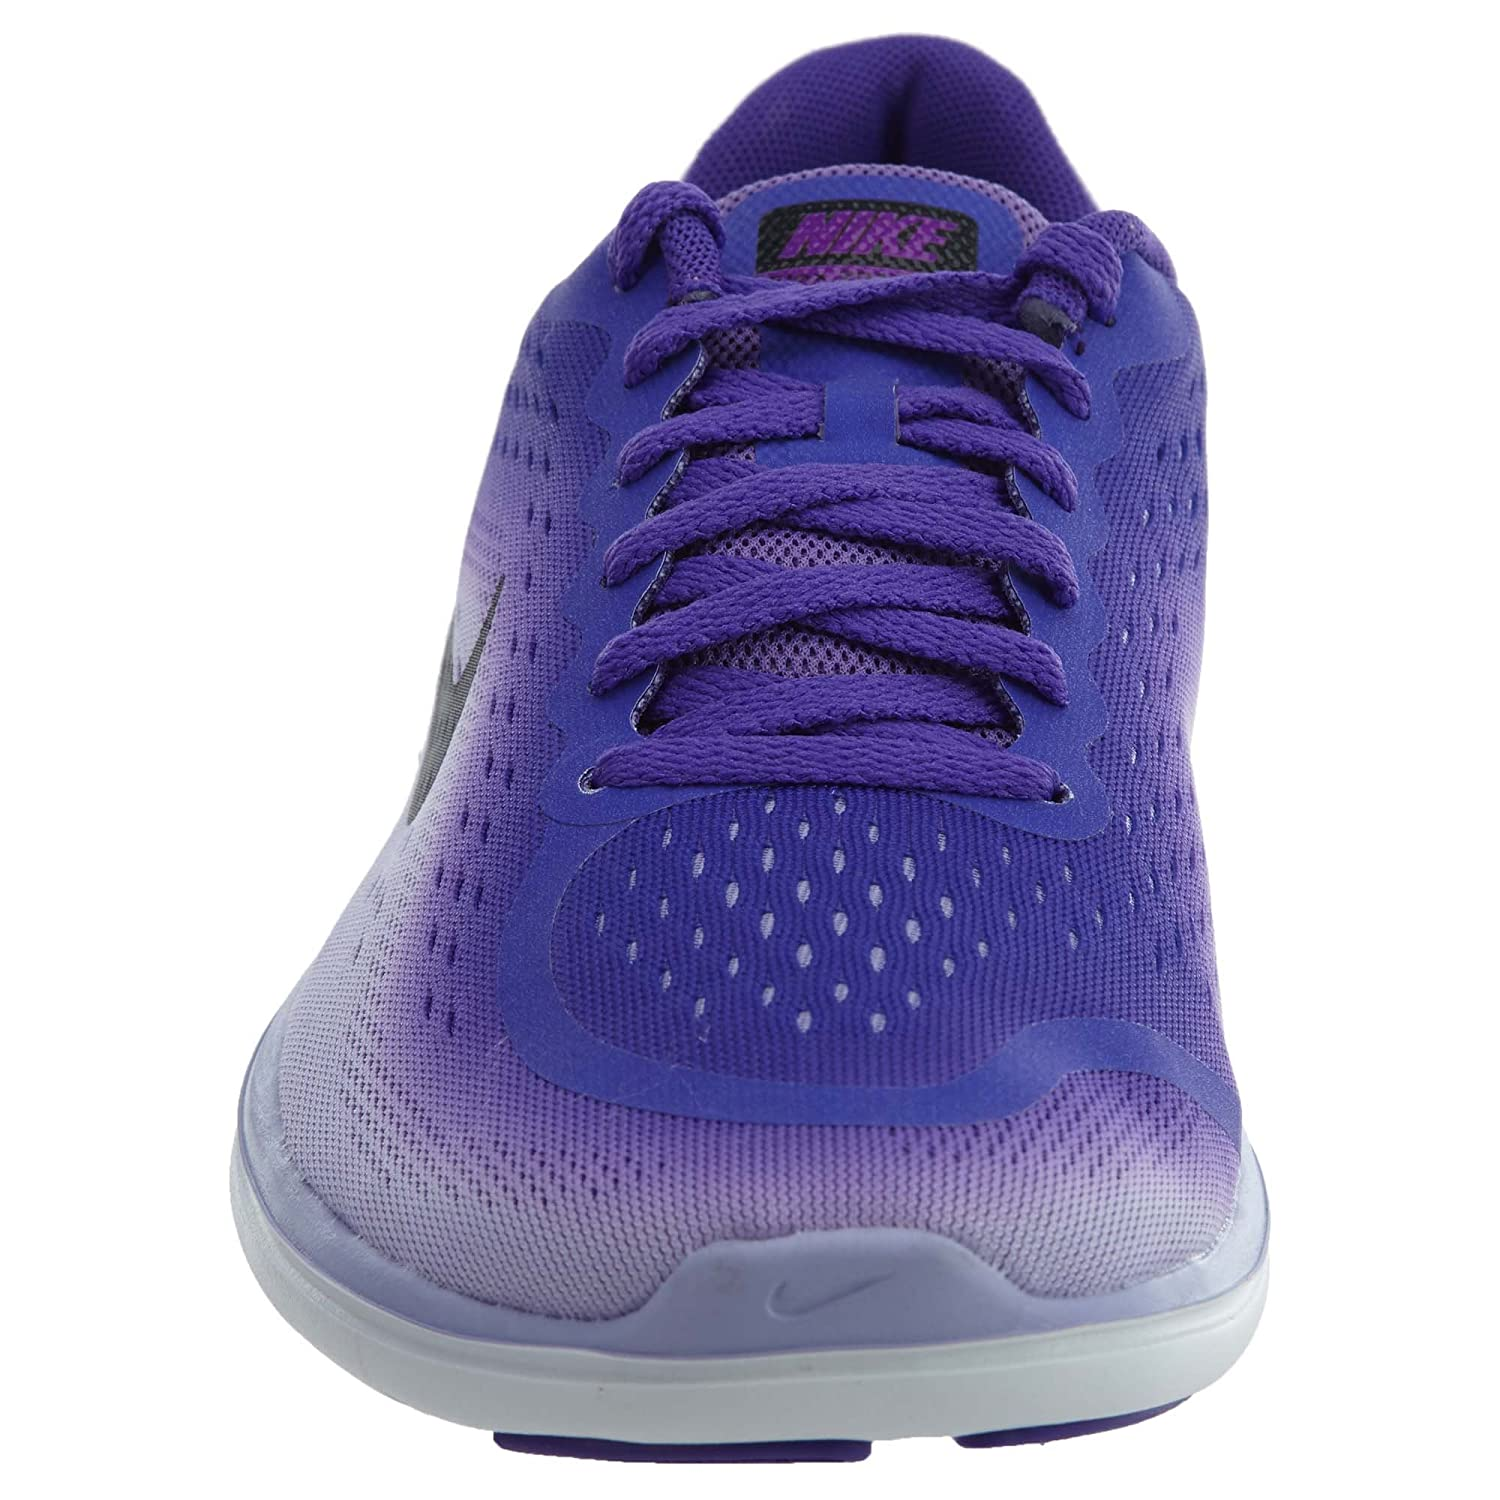 85fc9d0c0f Nike Girl's Flex RN 2017 (GS) Kids Shoe Hyper Grape/Black/Purple Agate Size  5. 5 M US: Amazon.in: Shoes & Handbags